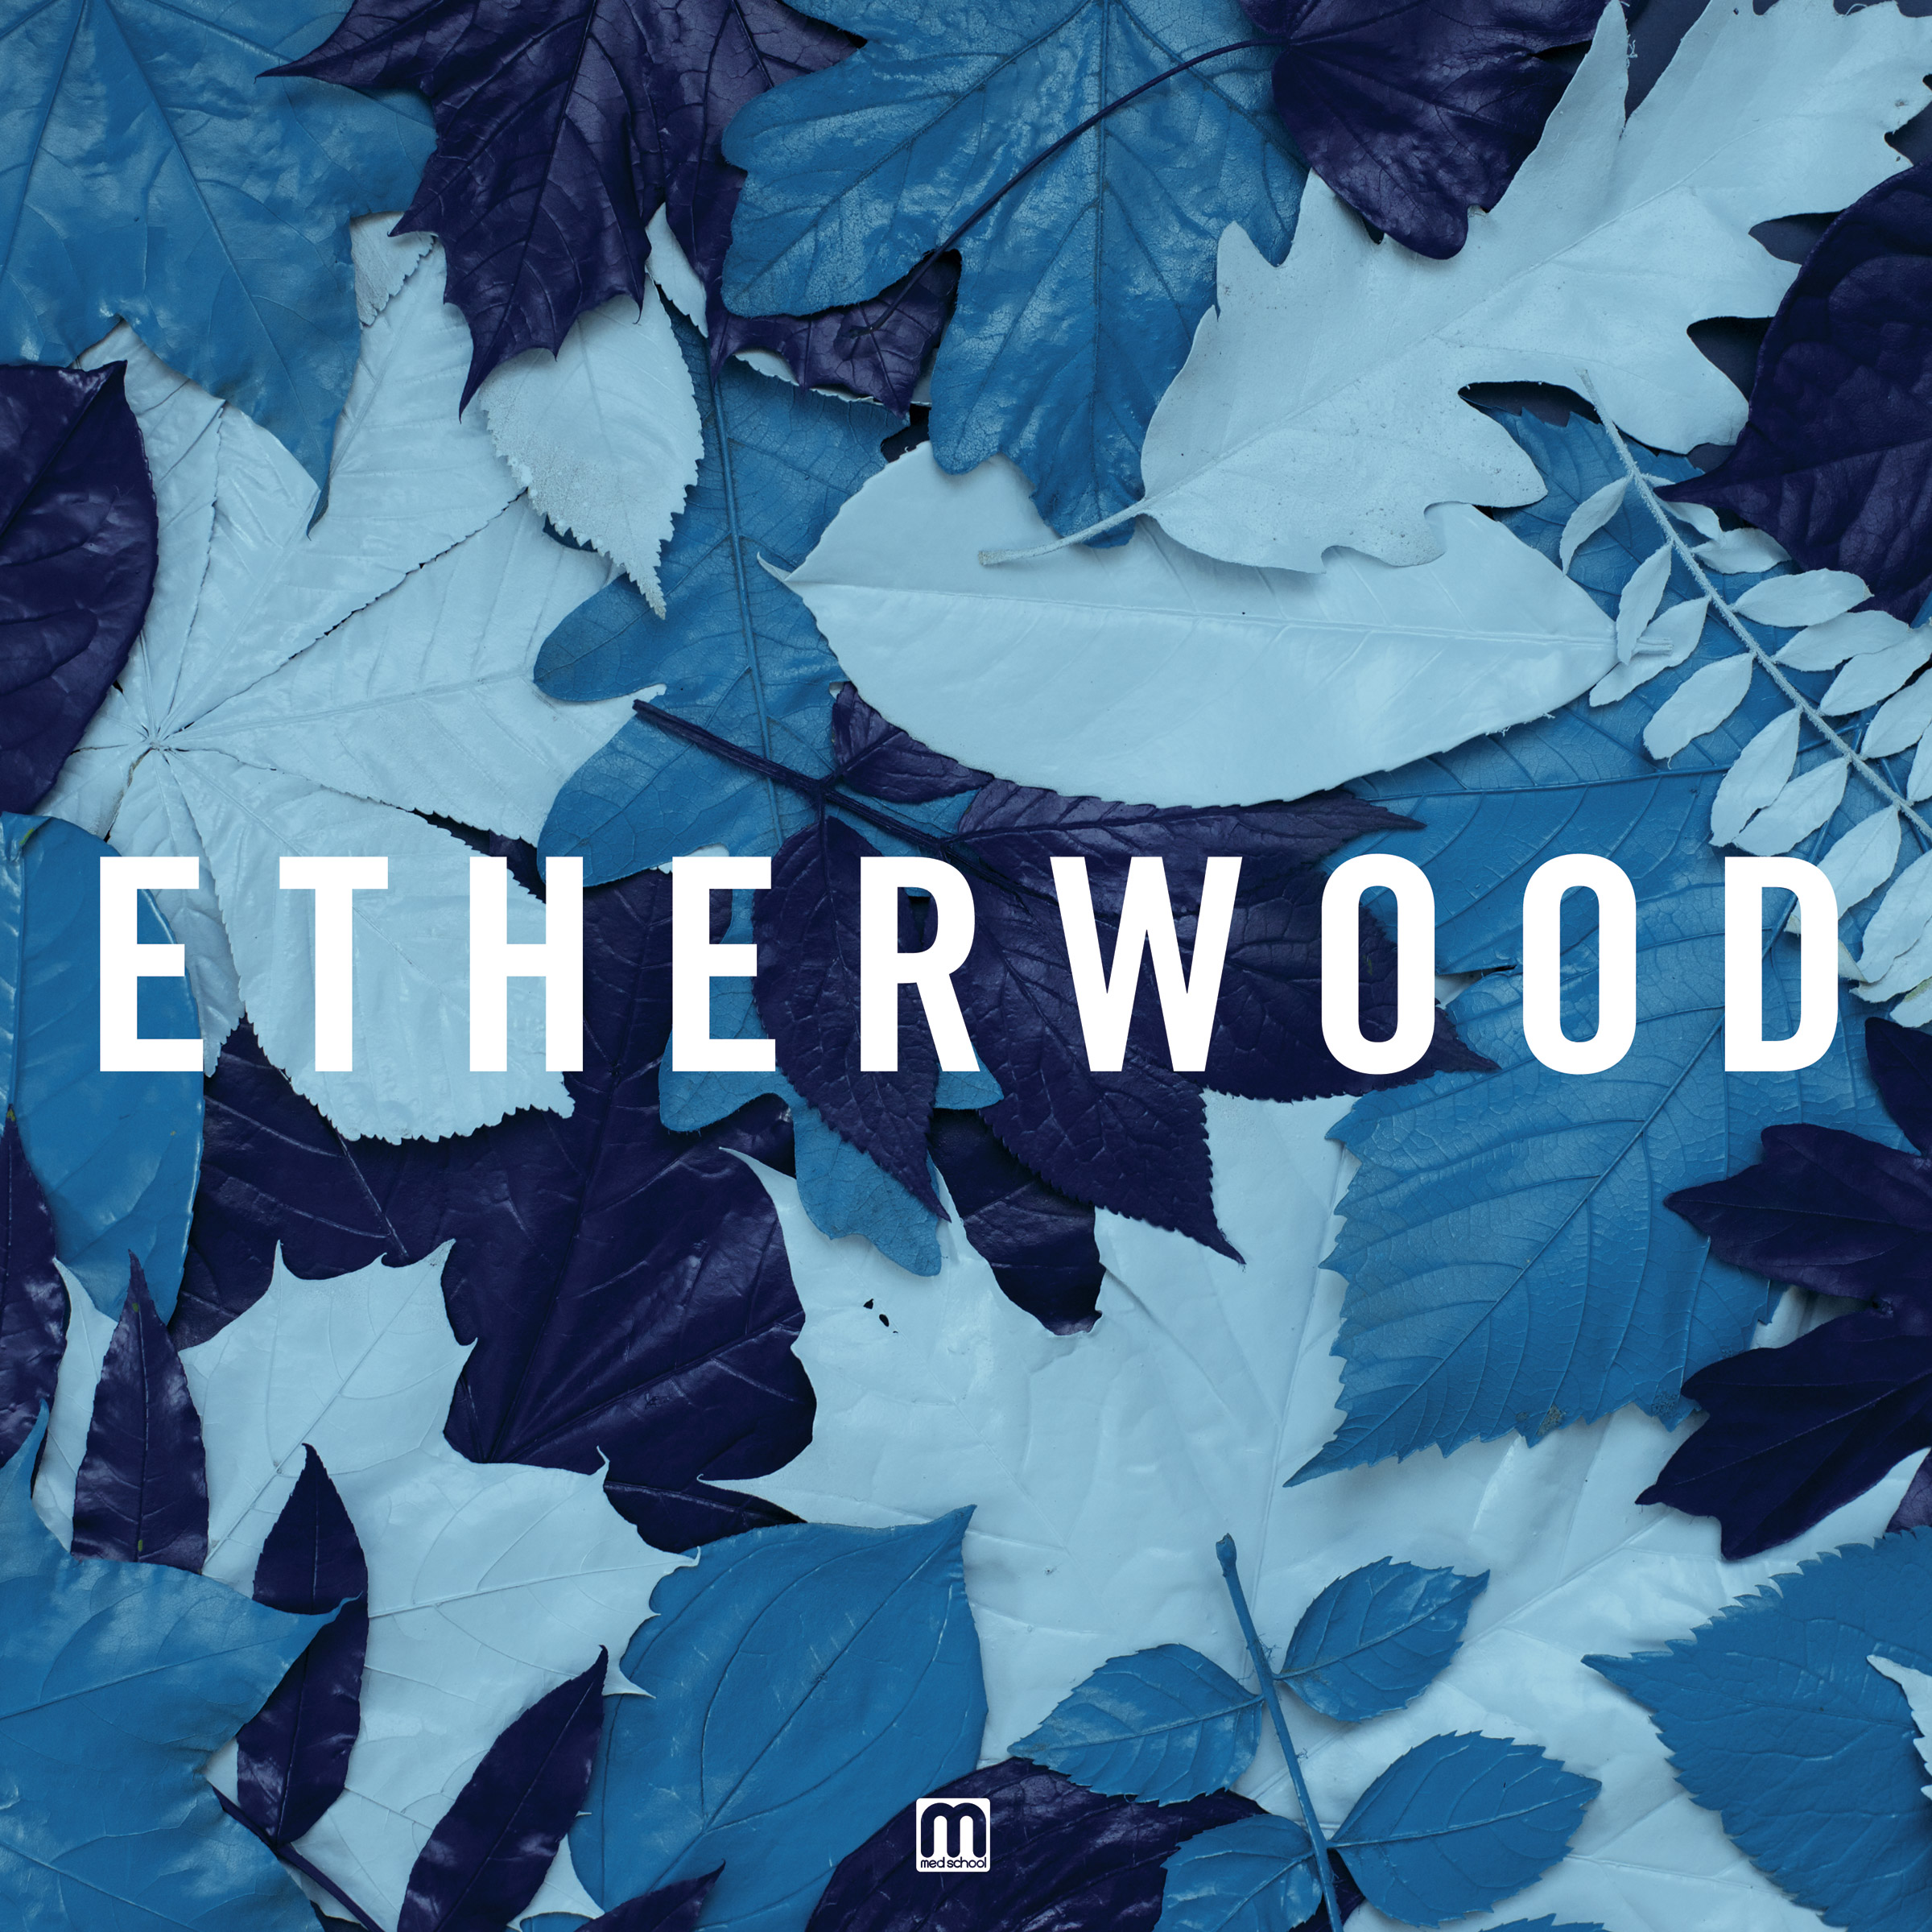 Etherwood/BLUE LEAVES CD